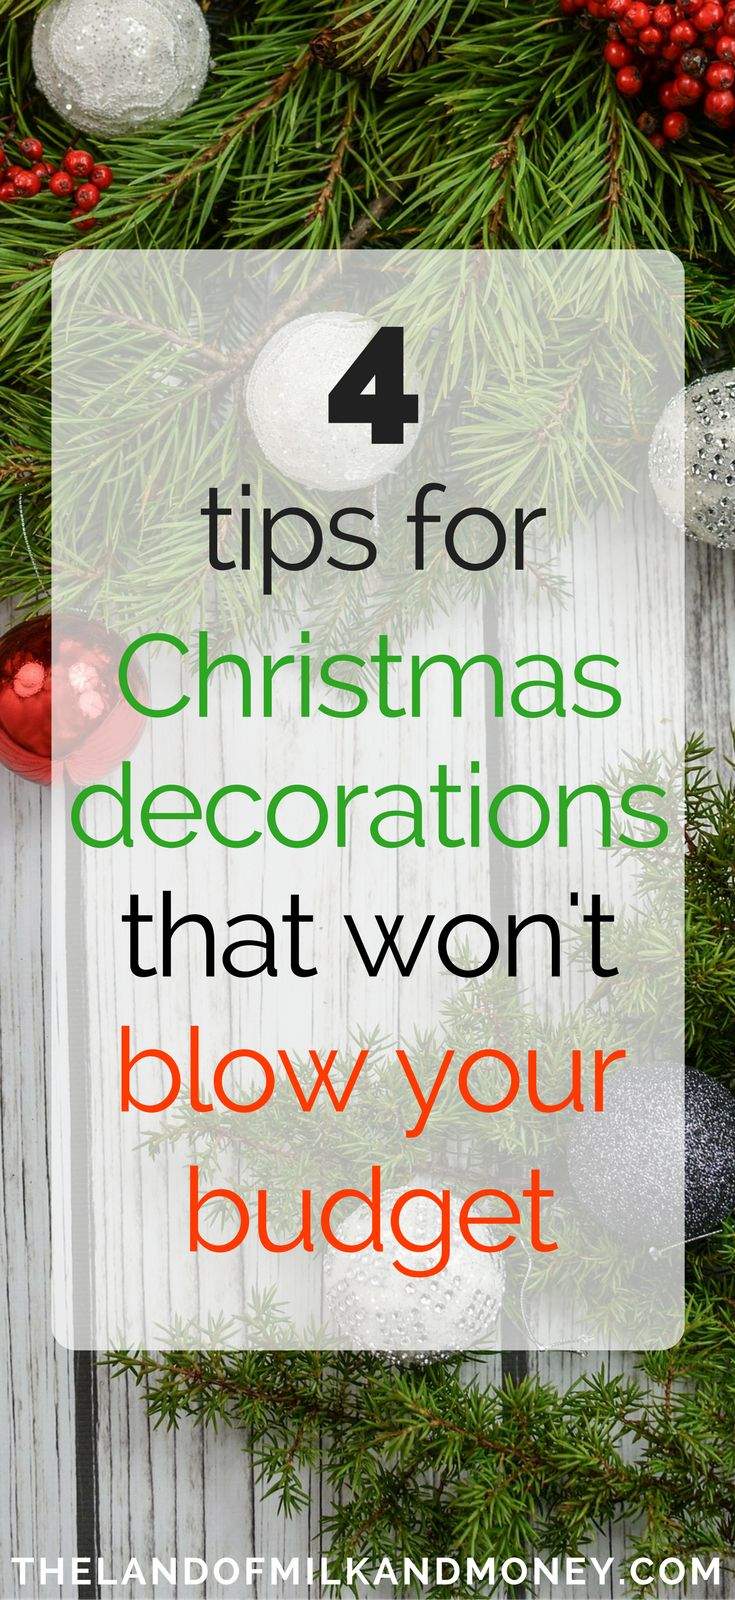 Having beautiful Christmas decor is one of the most important Christmas traditions in my family, so it's great to see how we can keep doing that while having a frugal Christmas on a budget. Christmas ornaments can get expensive but these simple ideas for Christmas decorations for the home are beautiful - while being a great money saving tip! Cheap and elegant is just what I need #christmas #holidays #frugal #savemoney